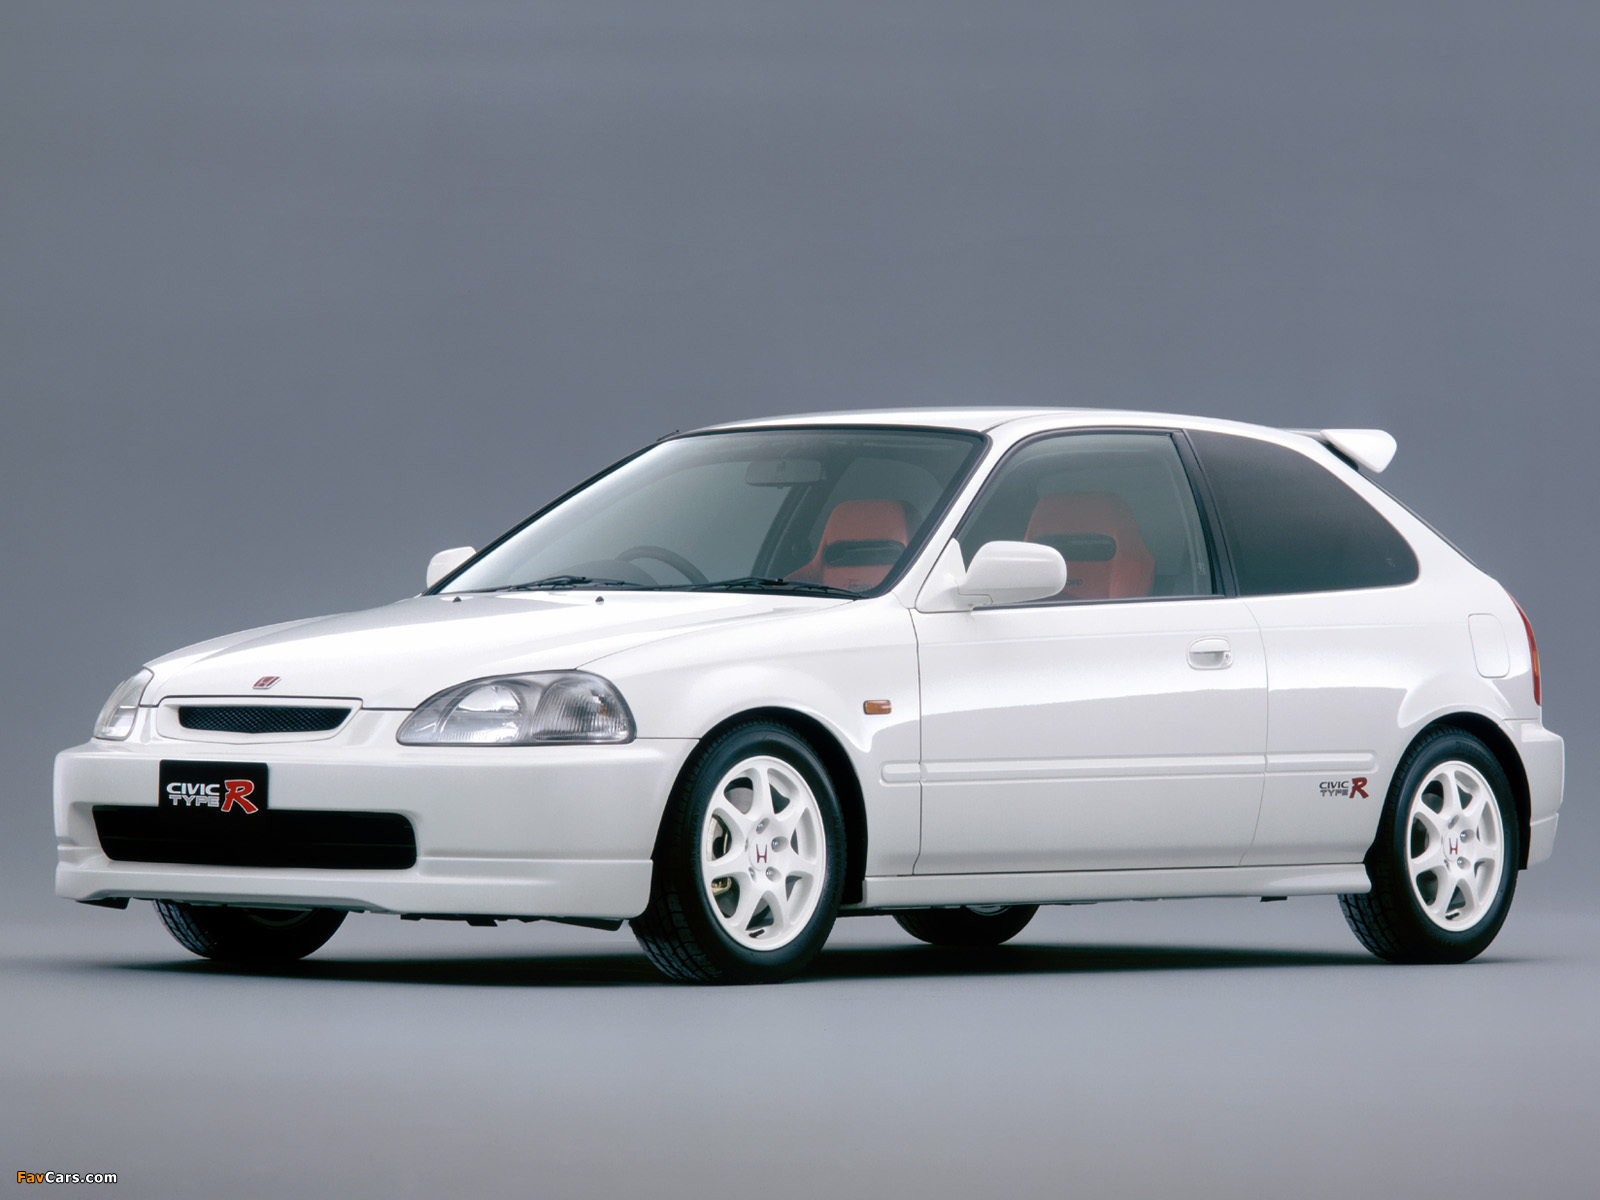 wallpapers of honda civic type r ek9 1997 2000 1600x1200